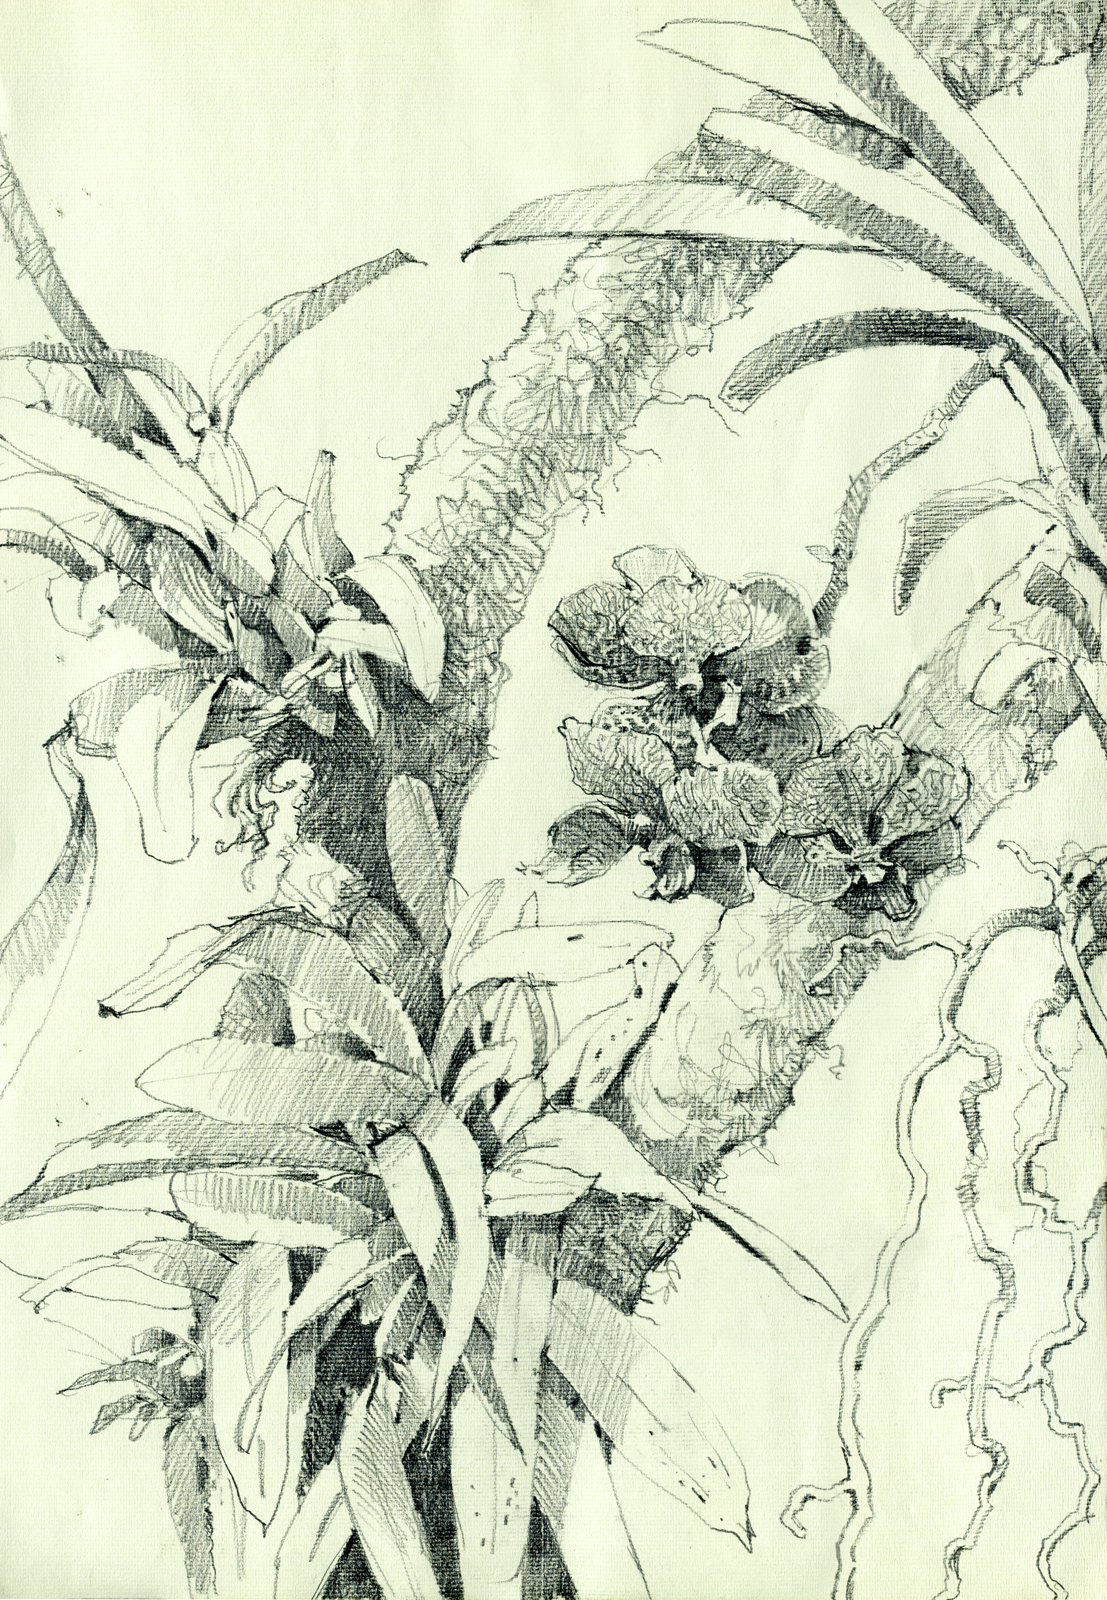 Orchid Plant Drawing Vanda Orchid Drawn at The